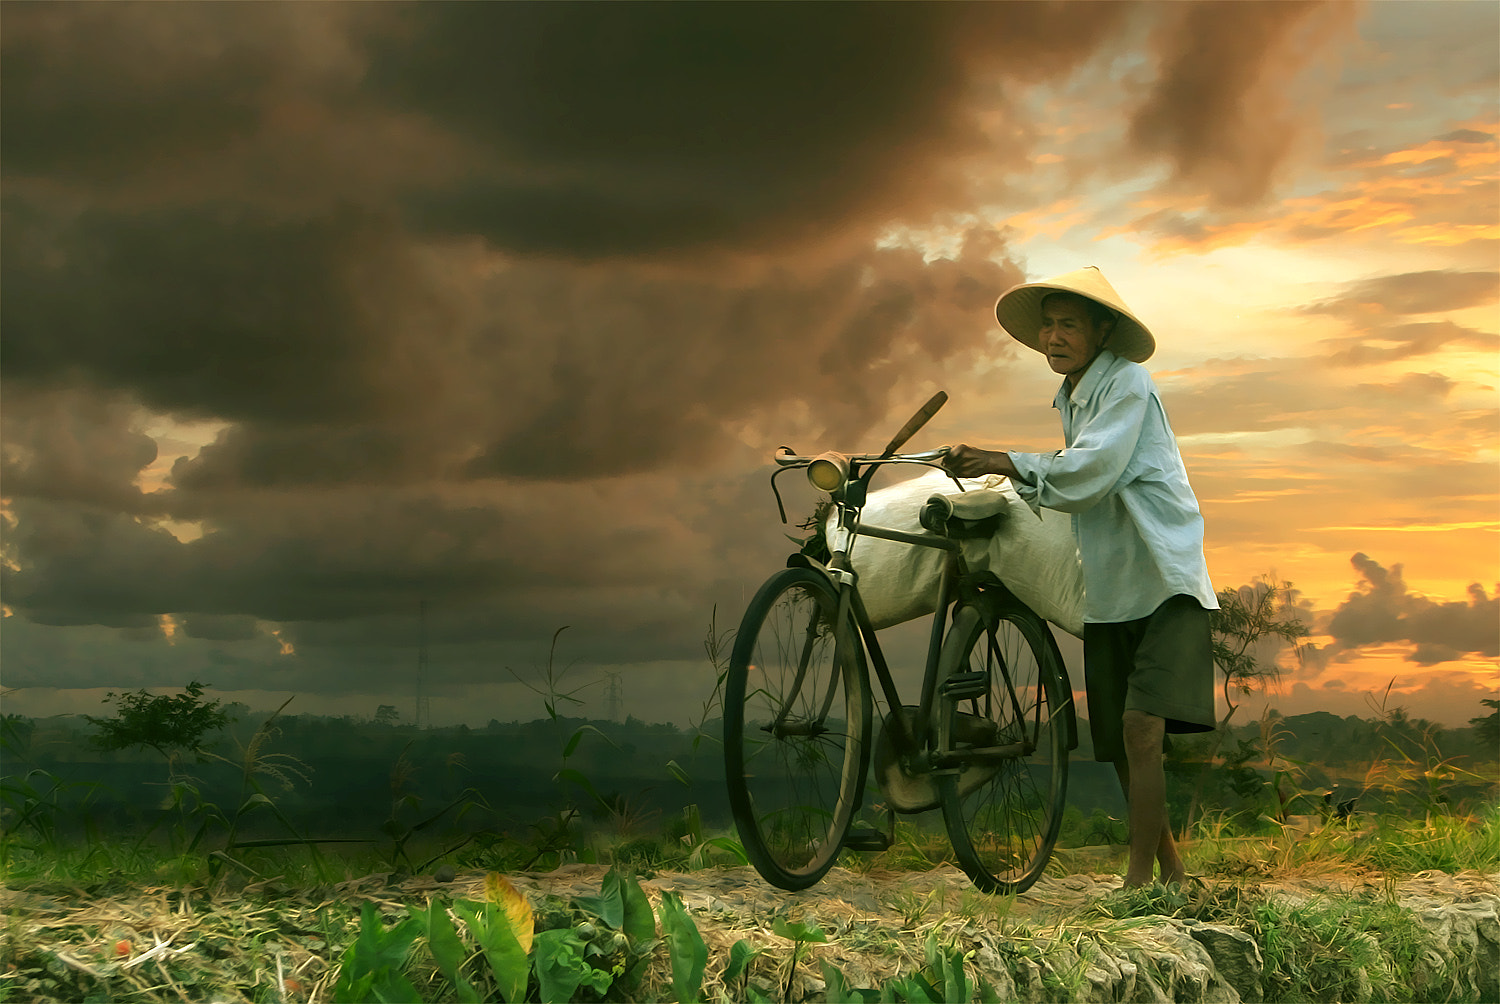 Photograph Time To Go Home-2 by 3 Joko on 500px